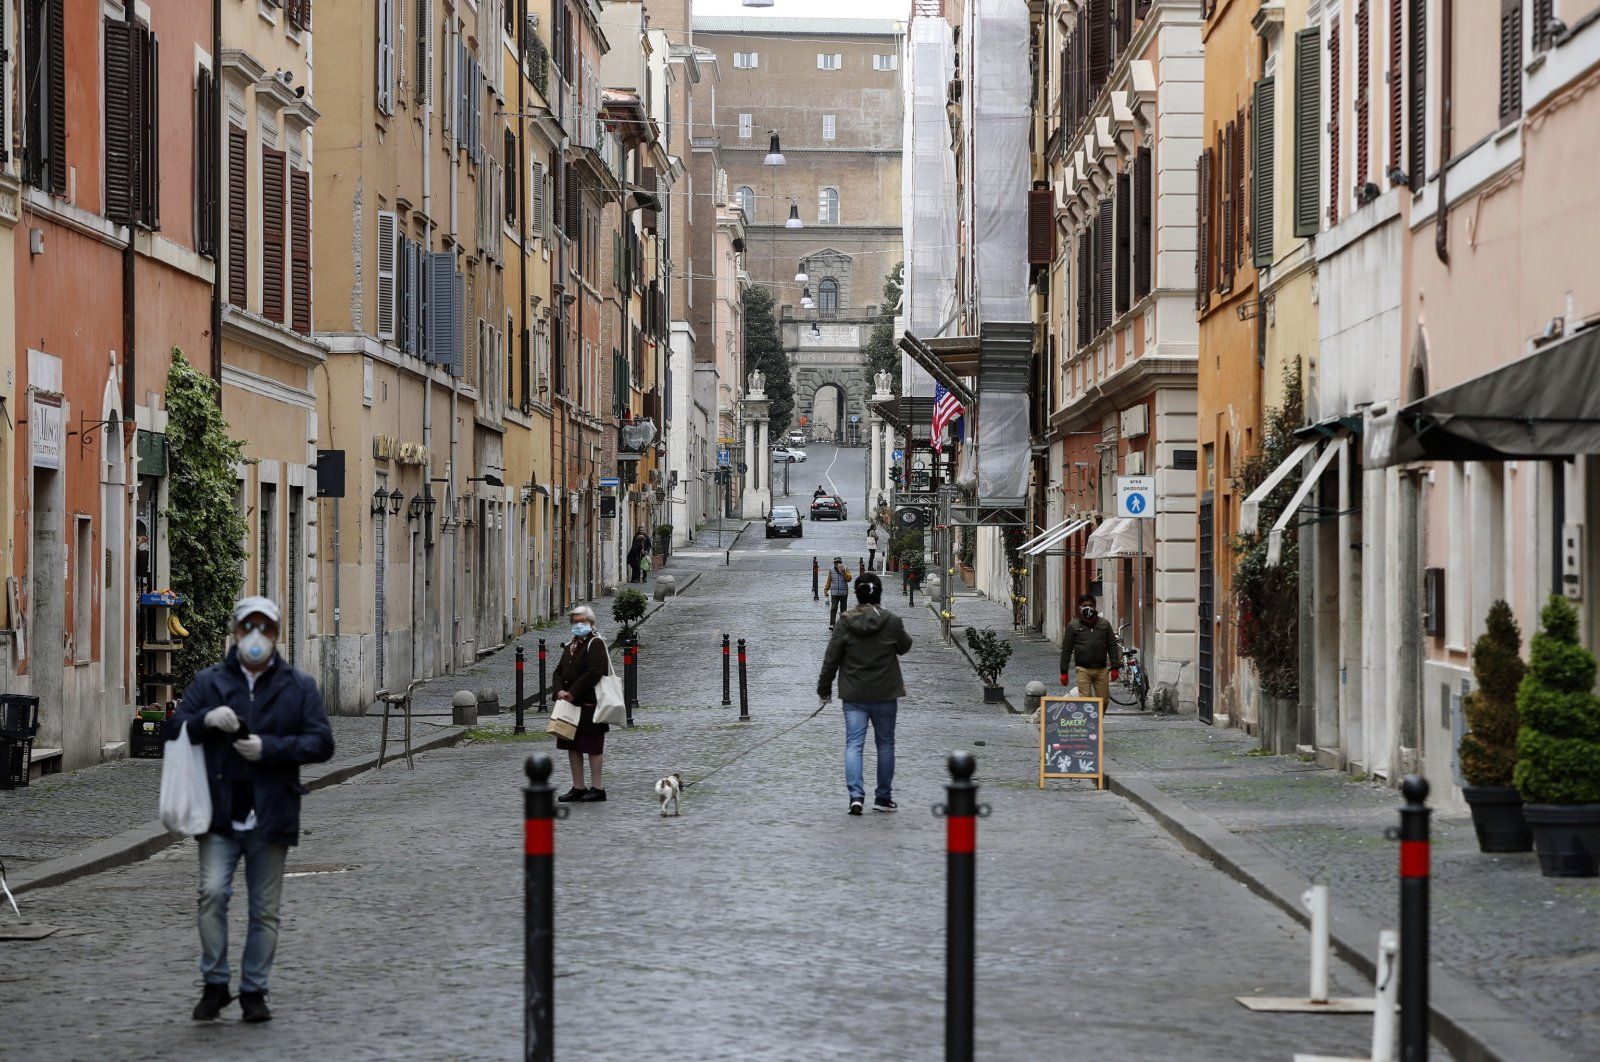 People wearing face masks walk on a street, during the coronavirus lockdown in Rome, in Borgo Pio, Italy, Monday, March 30, 2020. (EPA Photo)